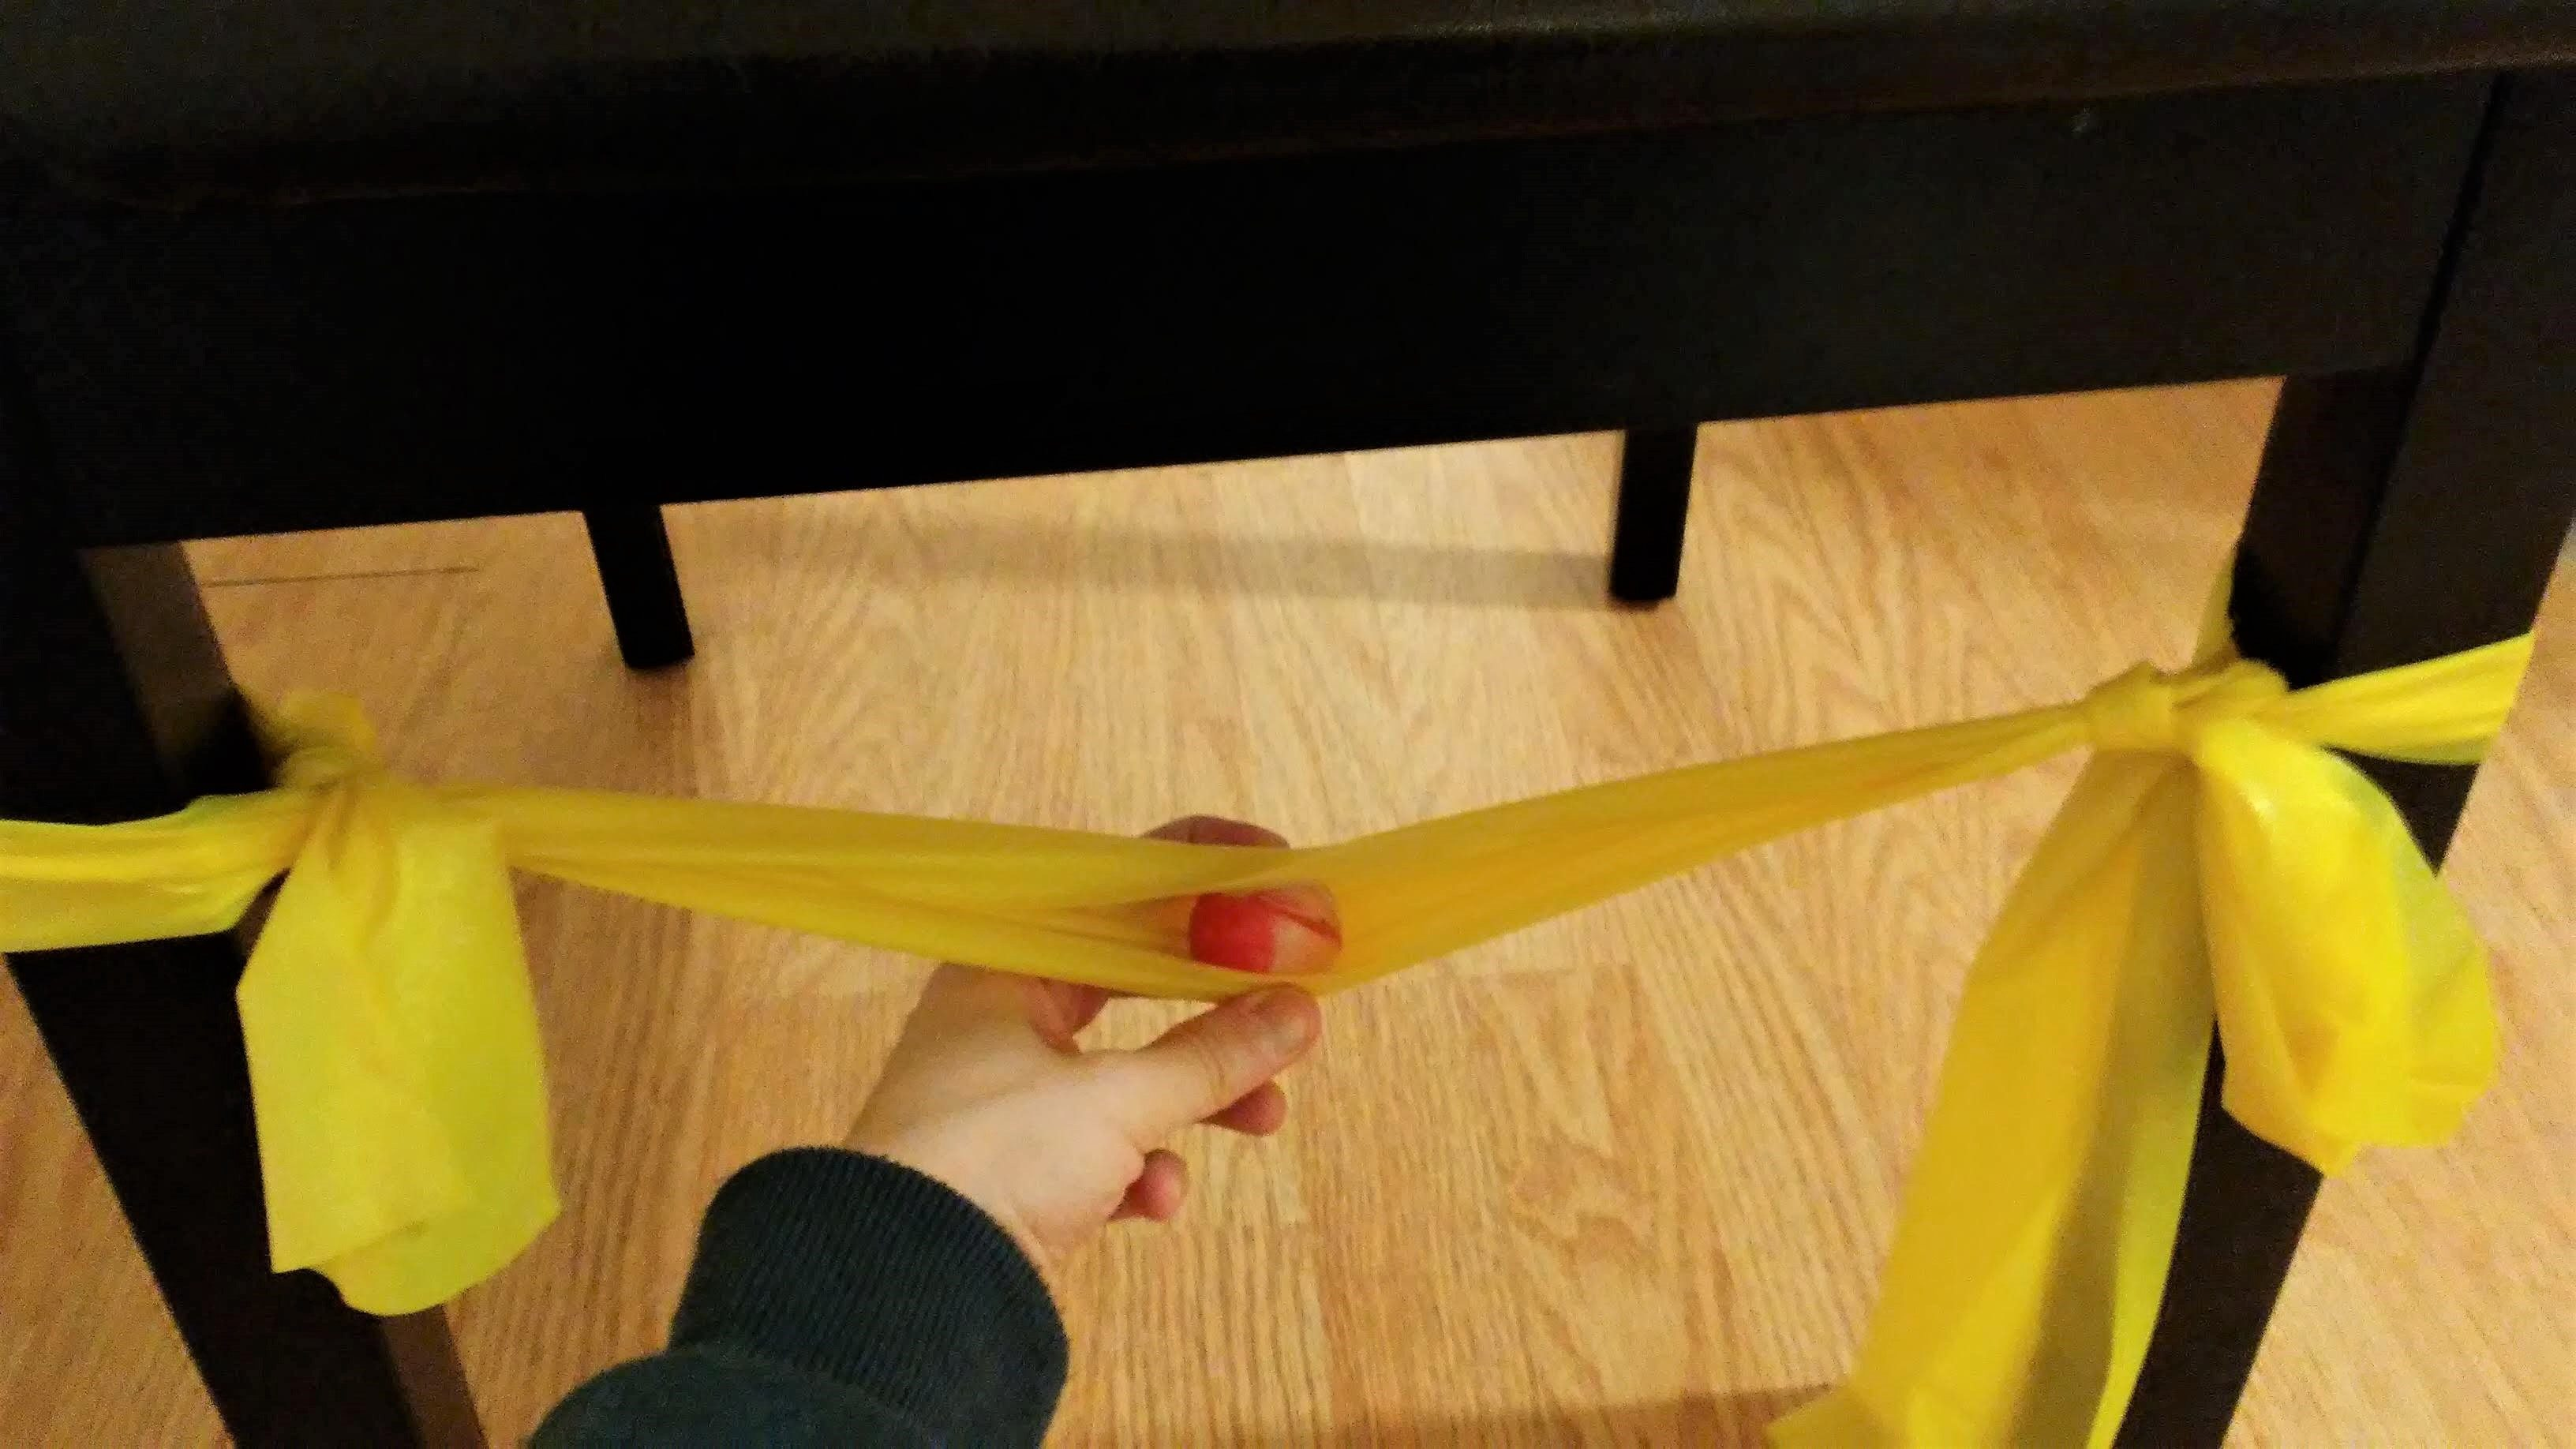 How to launch a bouncy ball using a resistance band and a chair